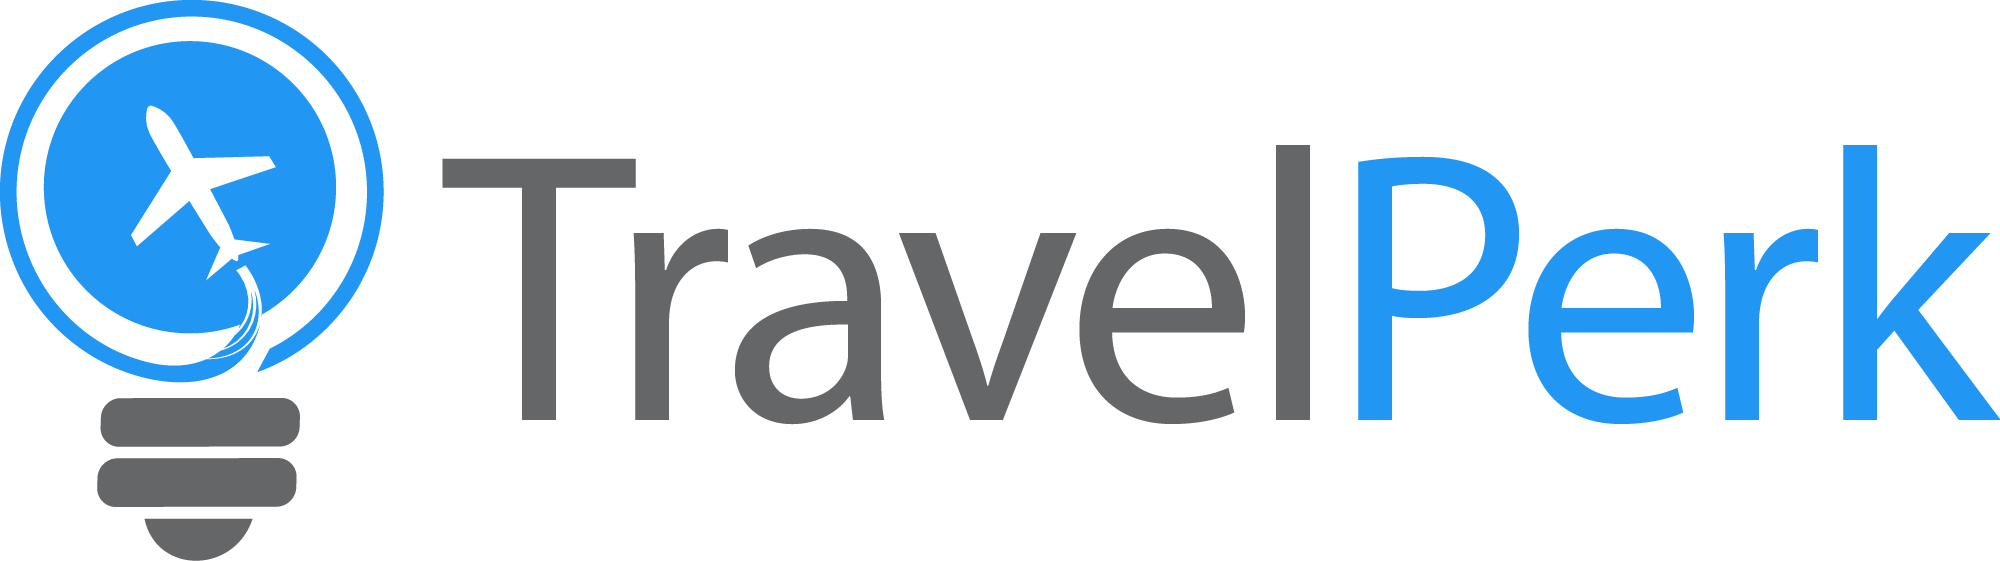 TravelPerk helps companies handle their business travel expenses